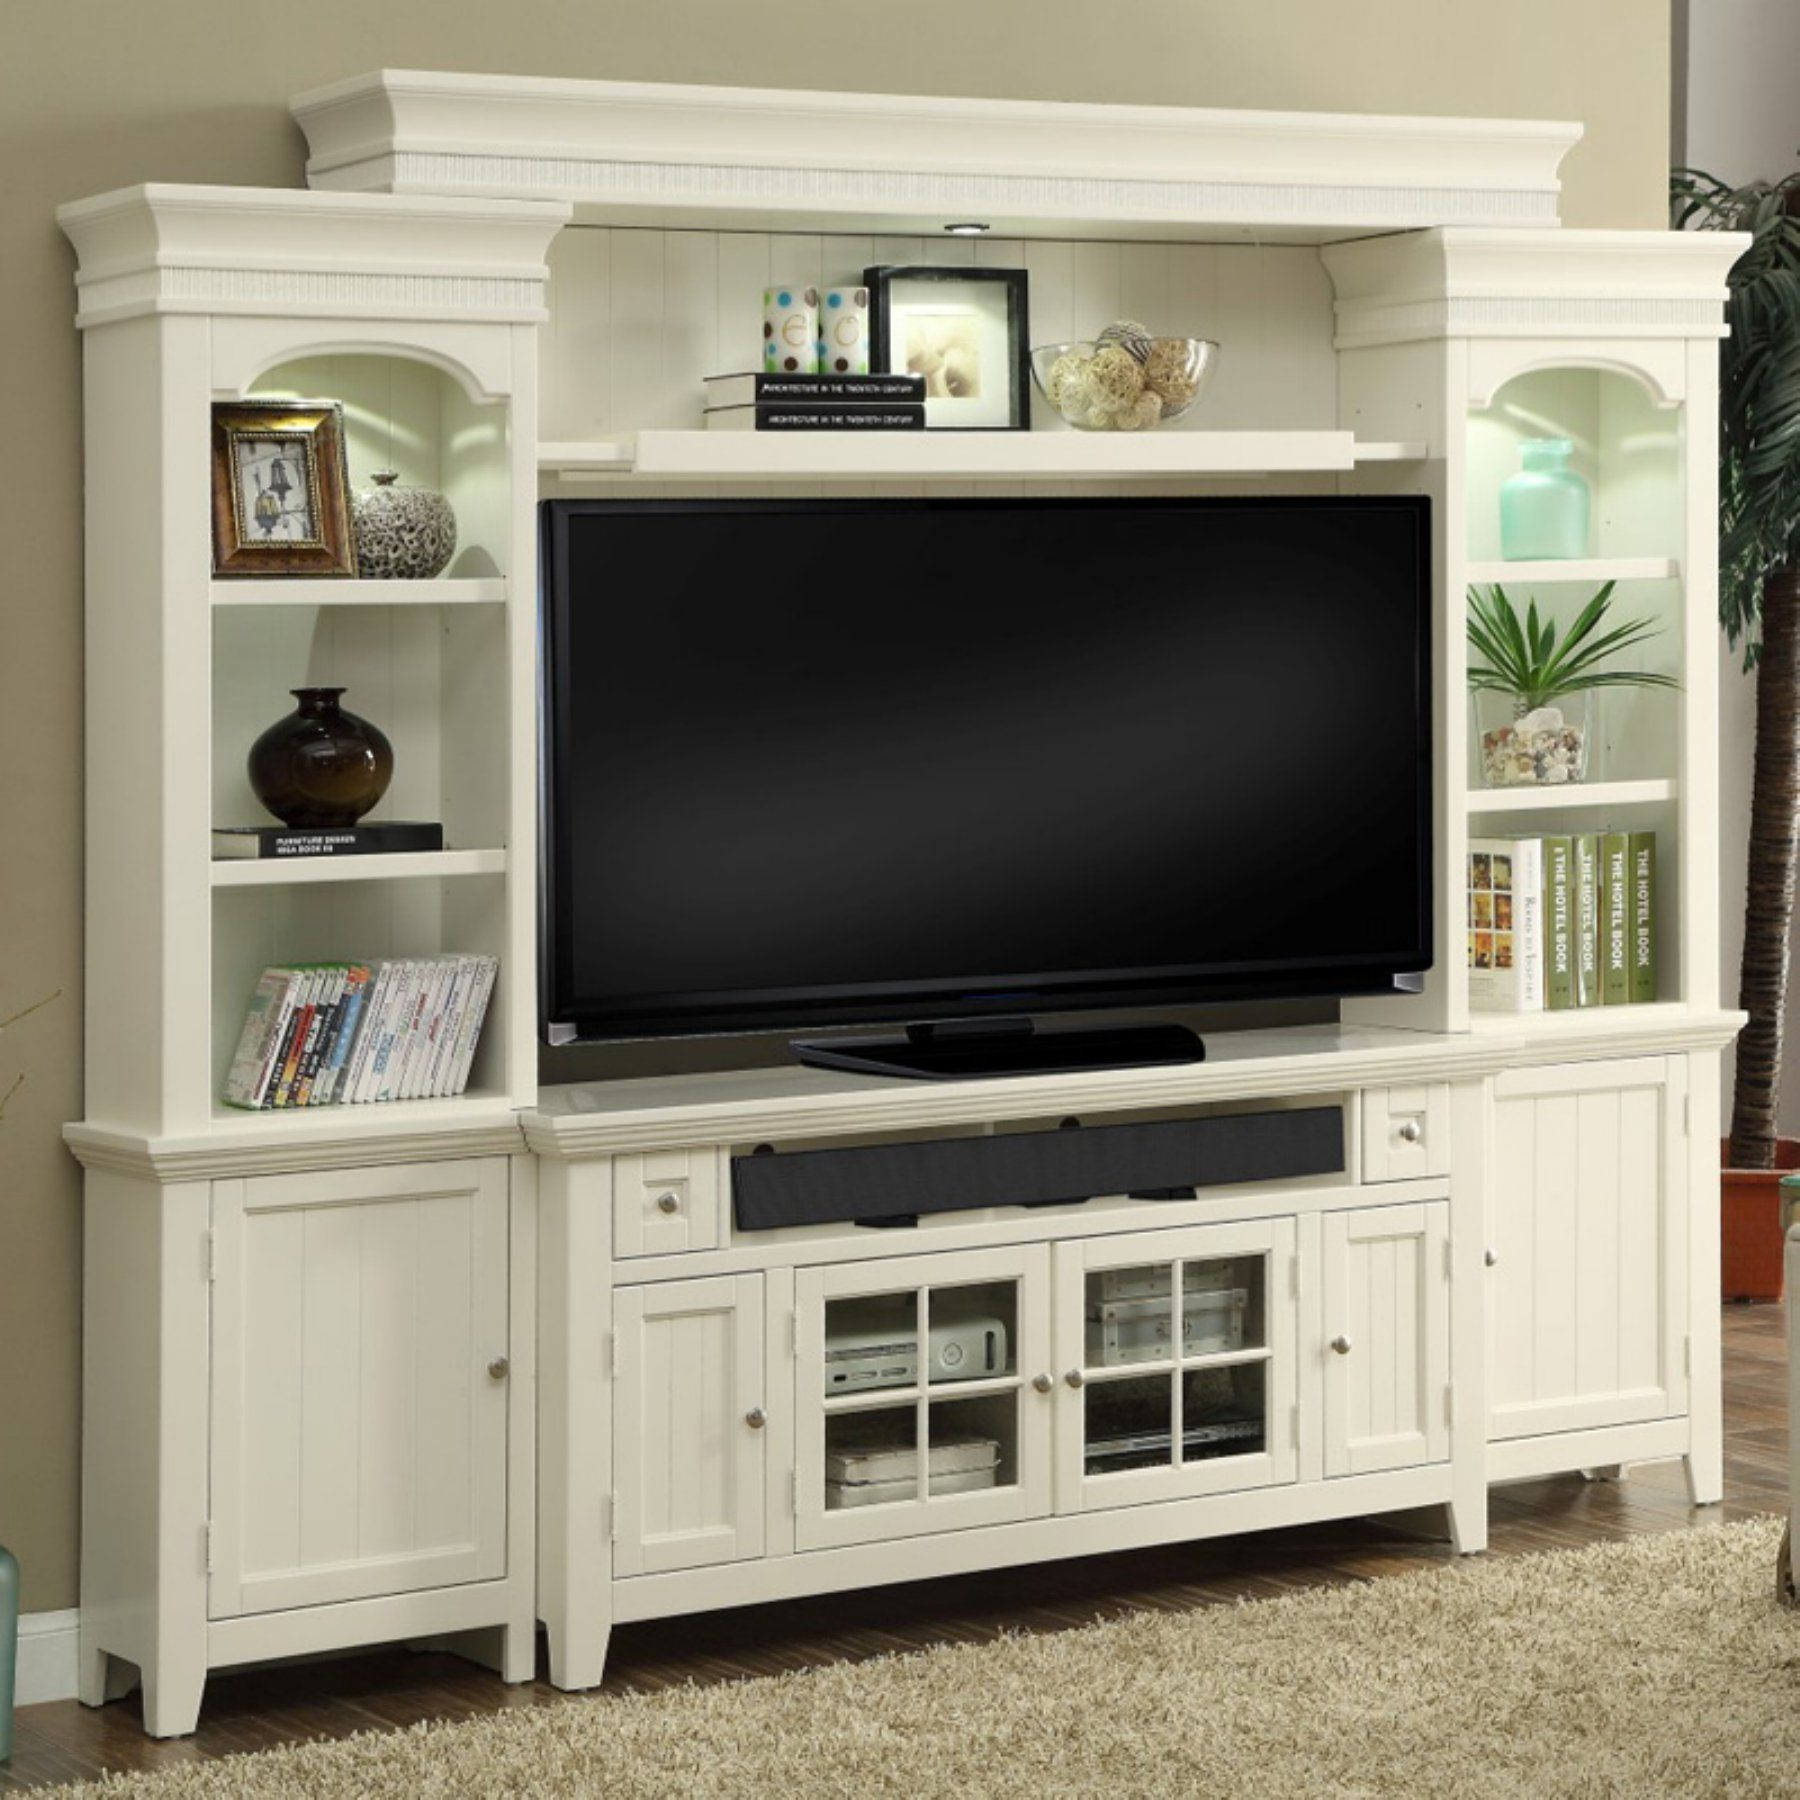 Parker House Tidewater 62 in. Entertainment Center in 2019 ...